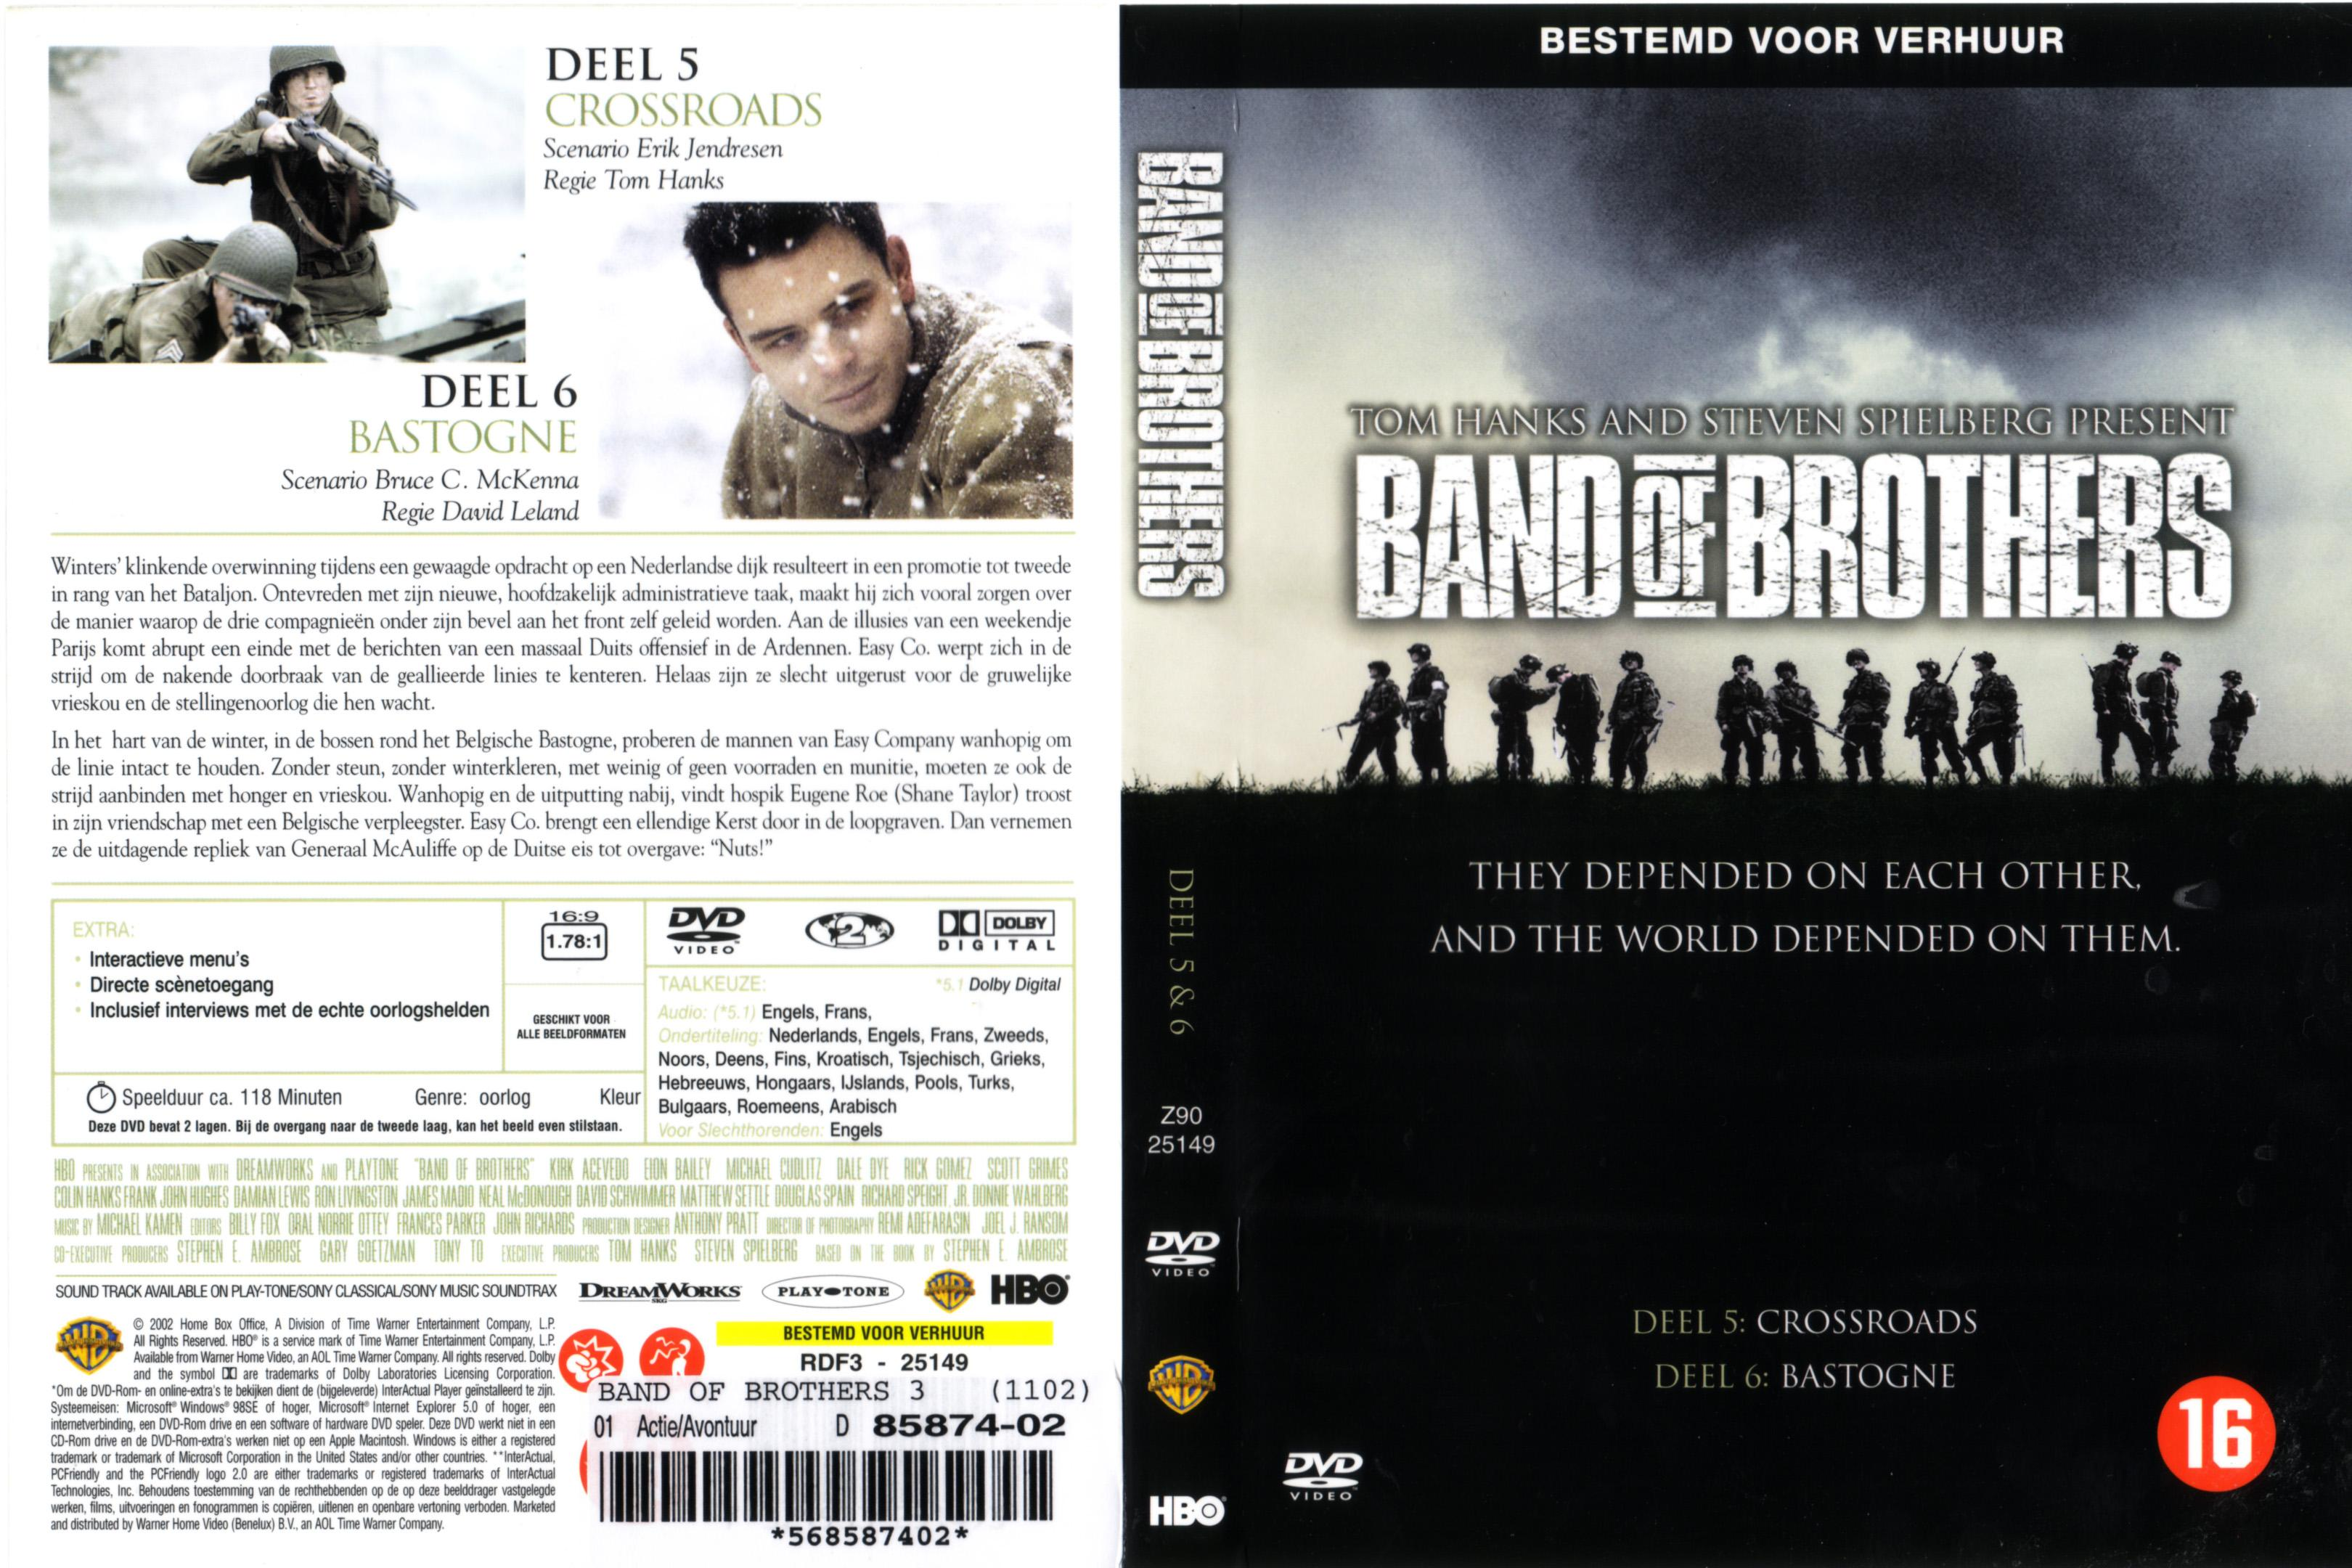 Band of Brothers disc 3